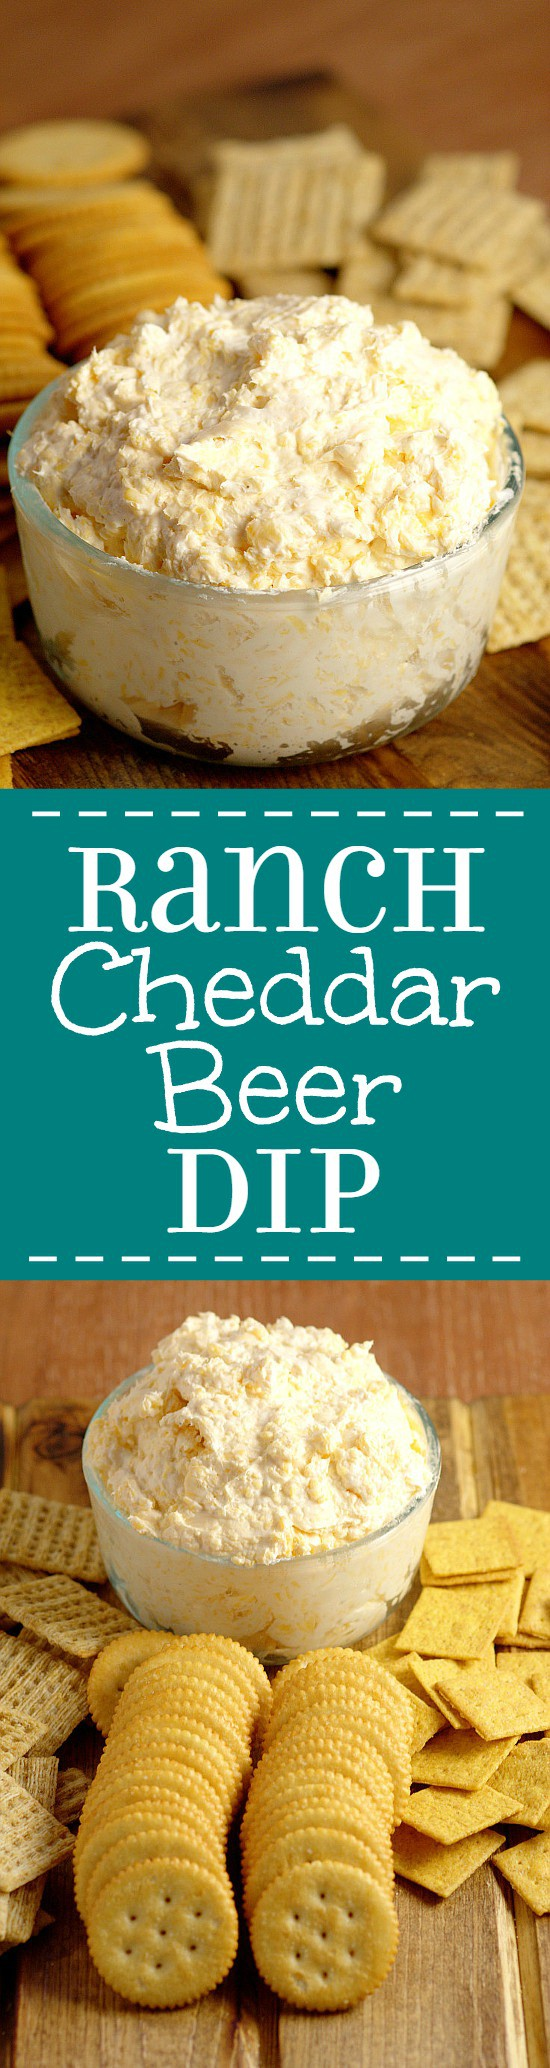 Ranch Cheddar Beer Dip | The Gracious Wife